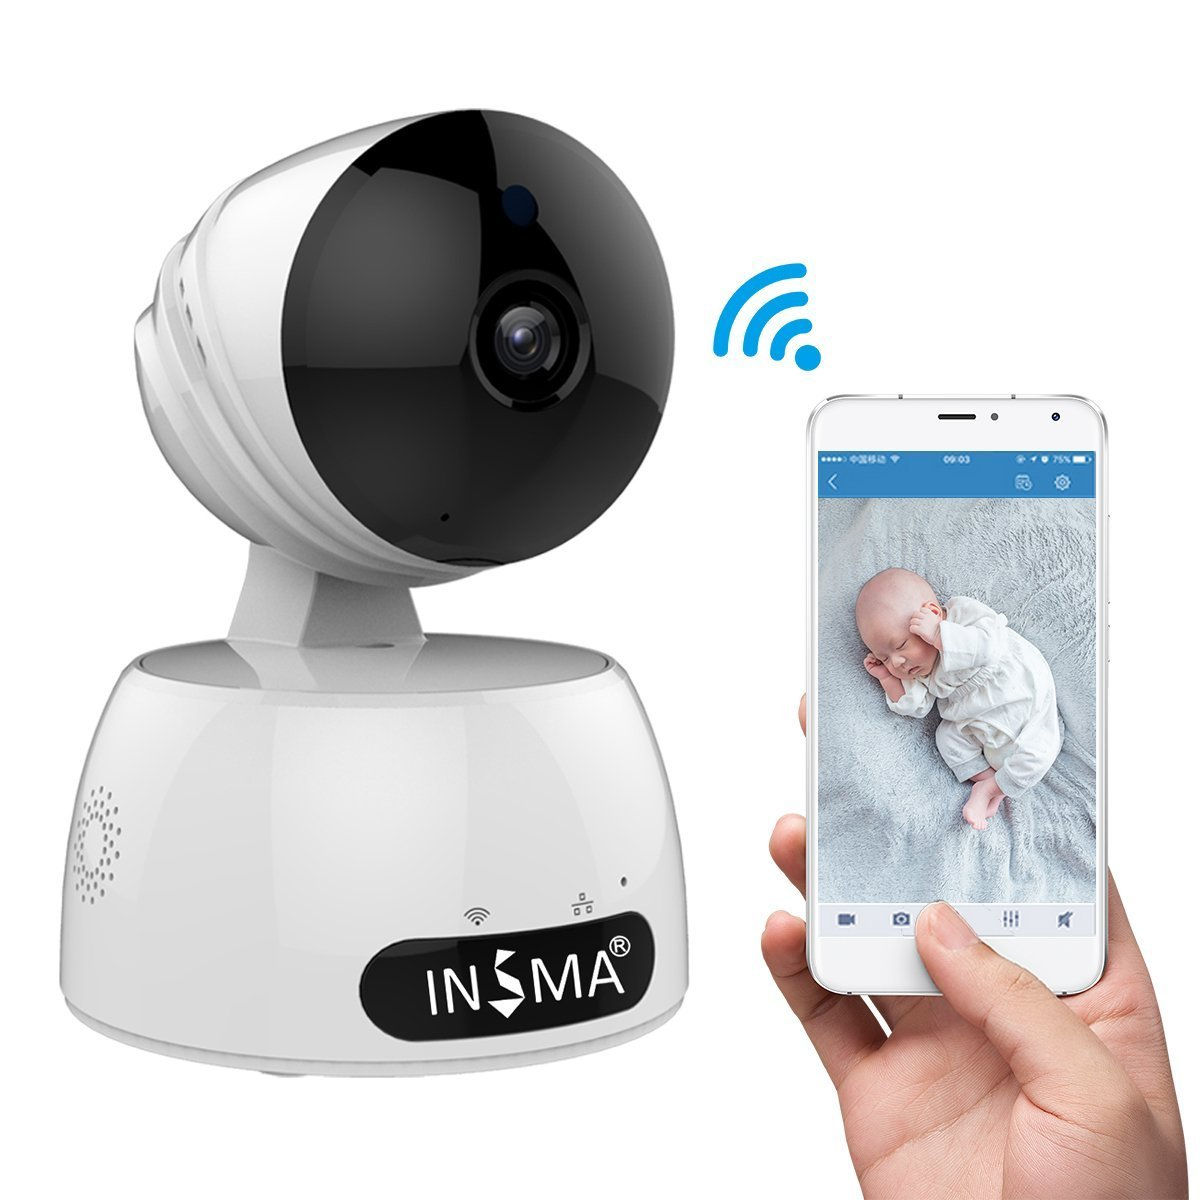 INSMA 1080P/HD Camera Best Mother's Days Gift, Wireless IP Camera with 2 Way Audio Motion Detect, Night Vision, Smart APP for for Pet Baby Monitor, Home Security Camera Motion Detection Indoor Camera